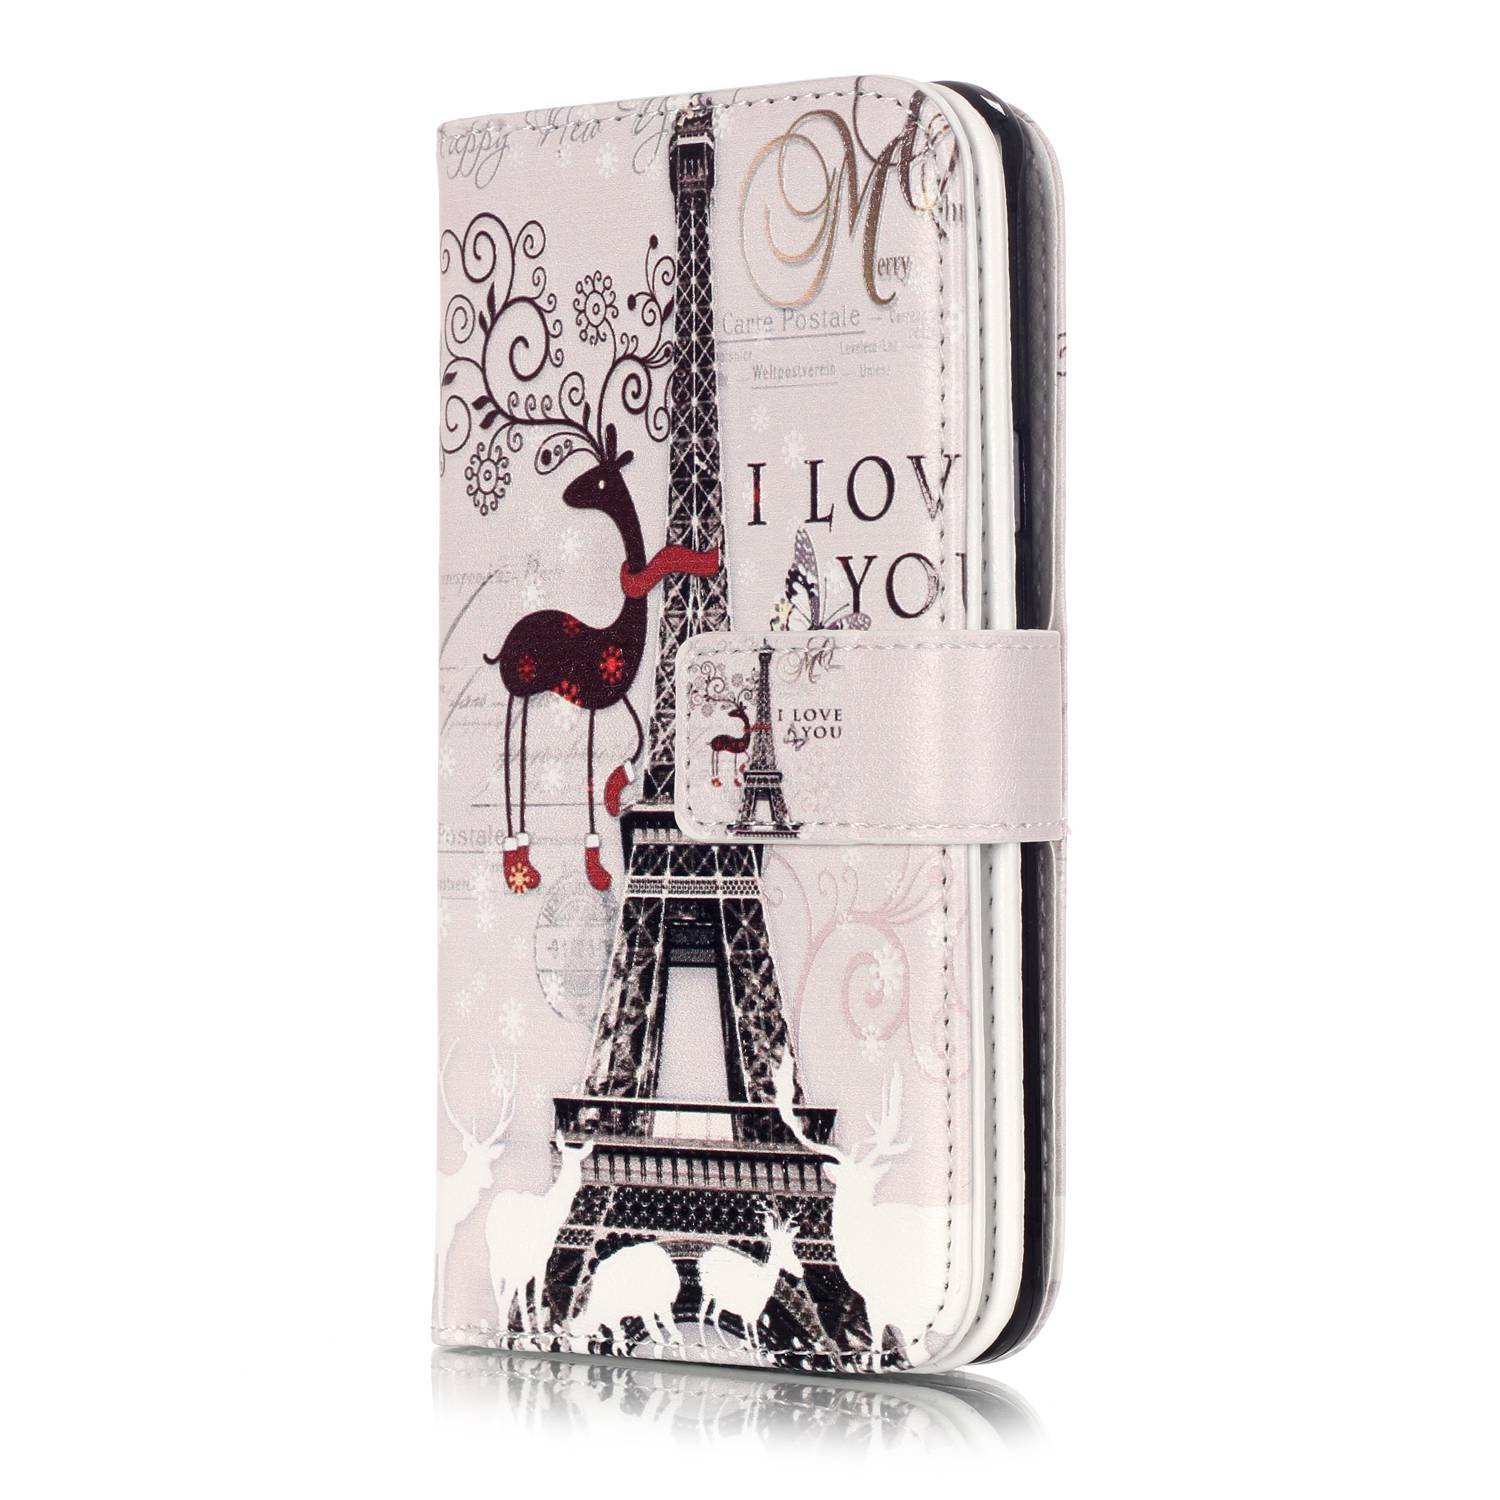 JuSha for Apply to Samsung Galaxy A5 2016 A510 Edge Case PU Leather Wallet Magnetic Cover Skin(Peacock mobile phone case)